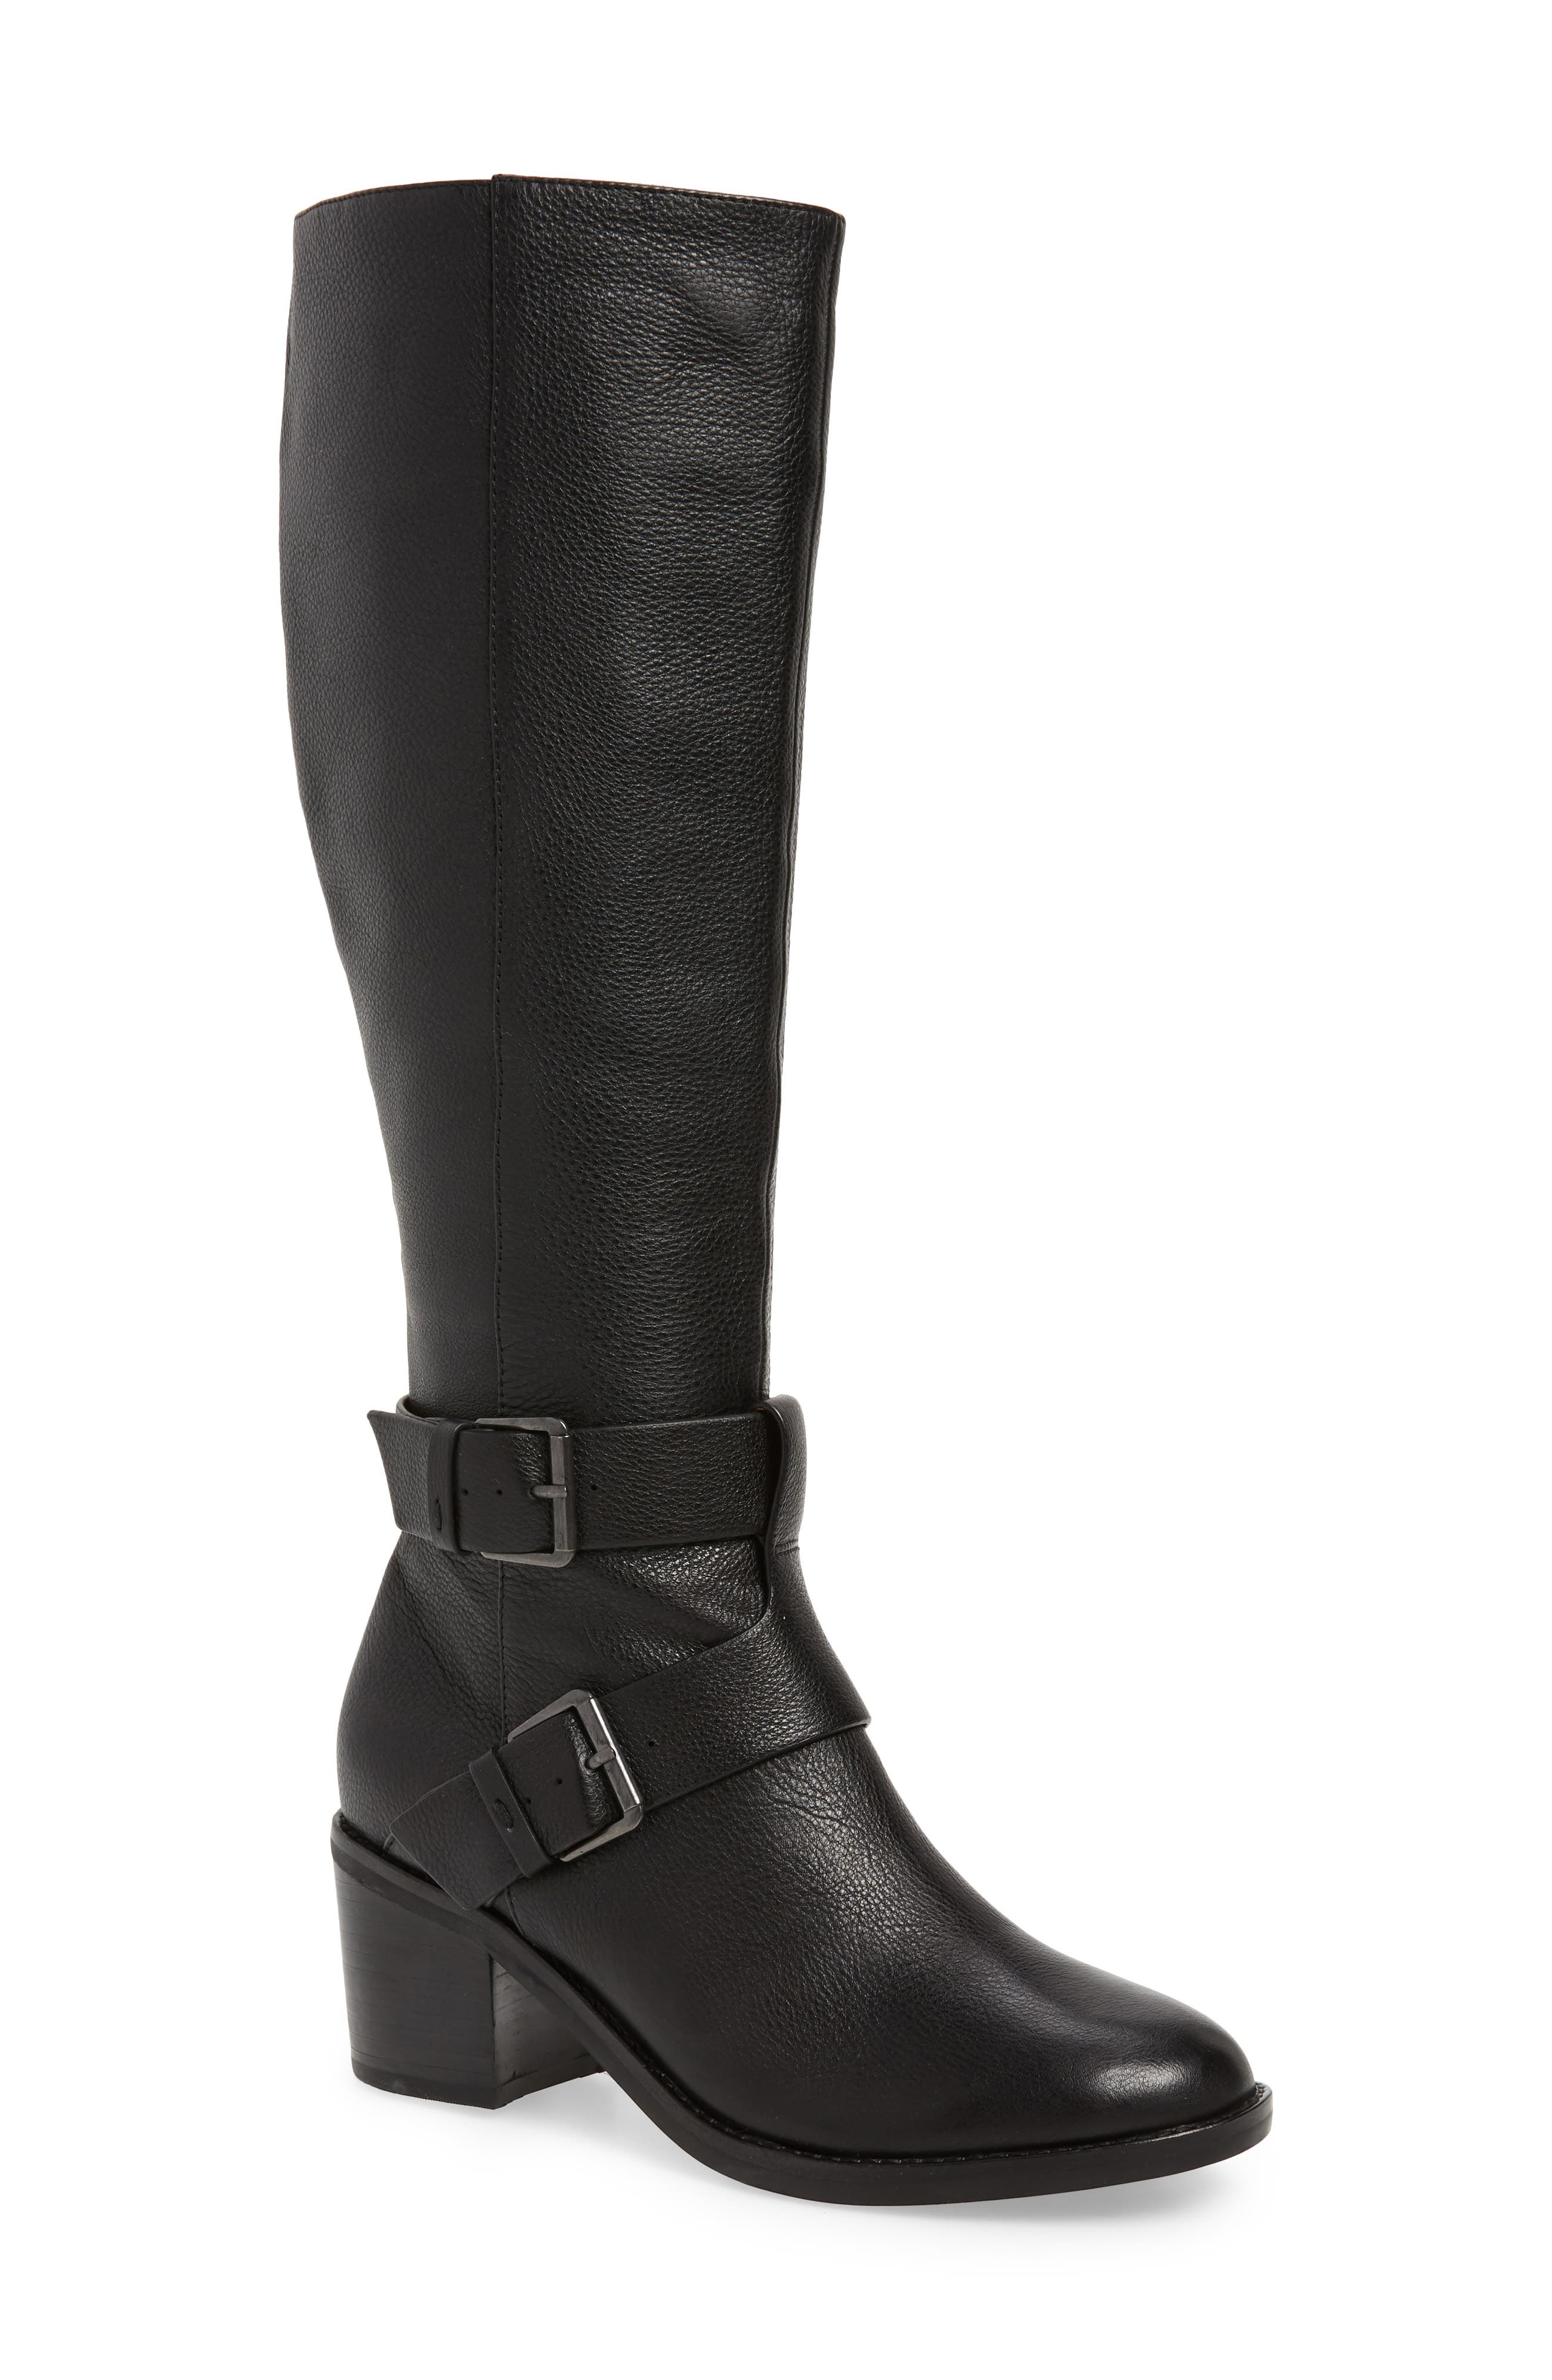 GENTLE SOULS BY KENNETH COLE Verona Knee-High Riding Boot, Main, color, 001